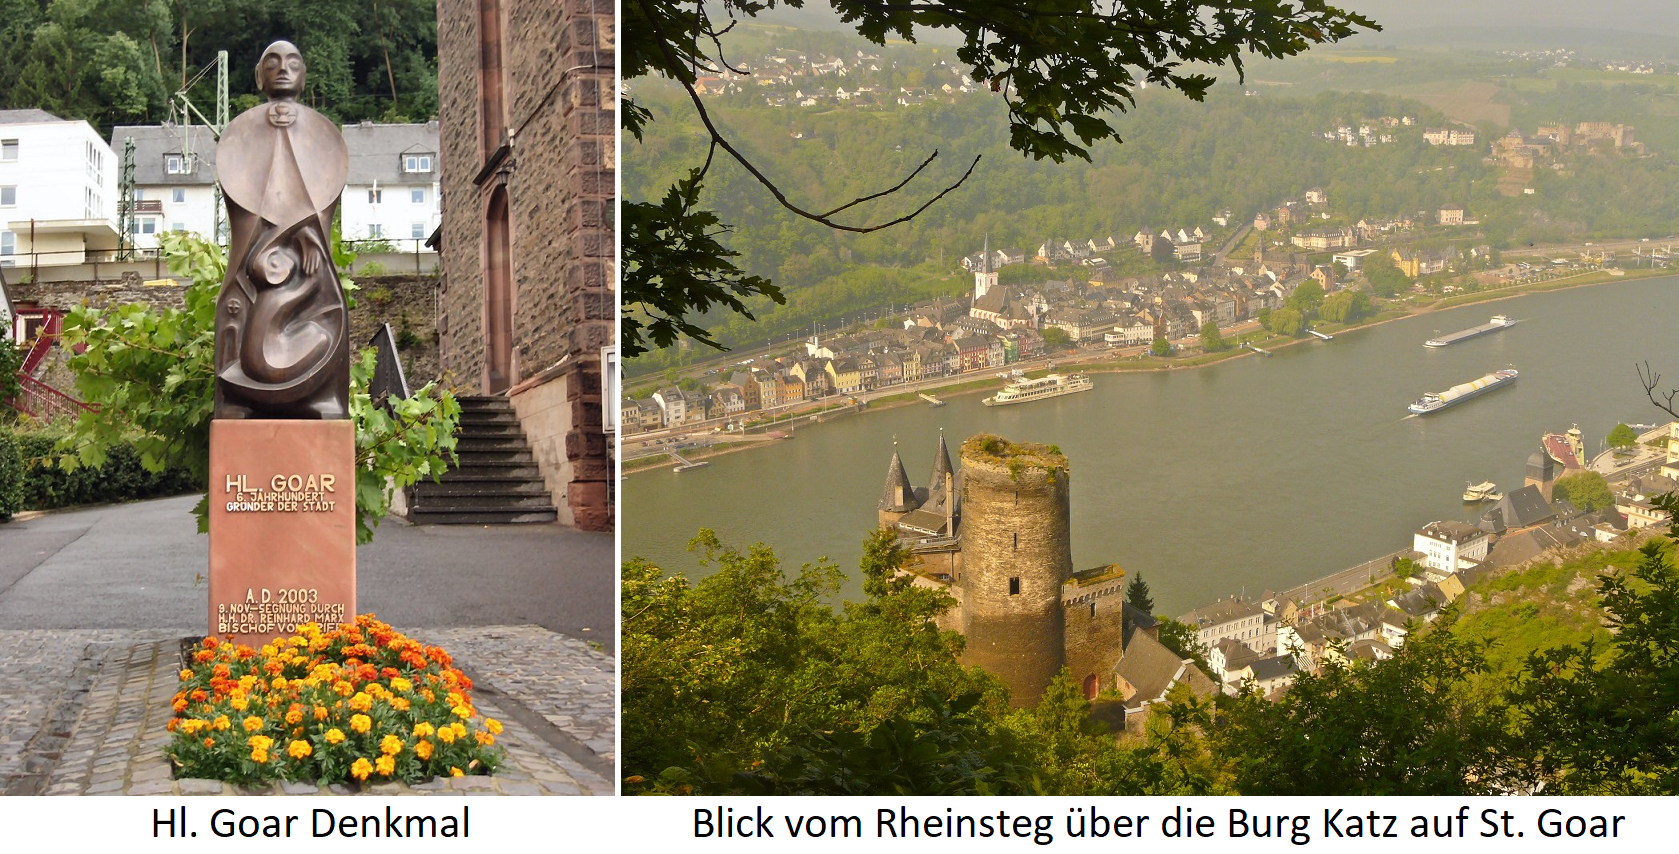 Goar - St. Goar monument and view from Rheinsteg over Katz castle to the community of St. Goar